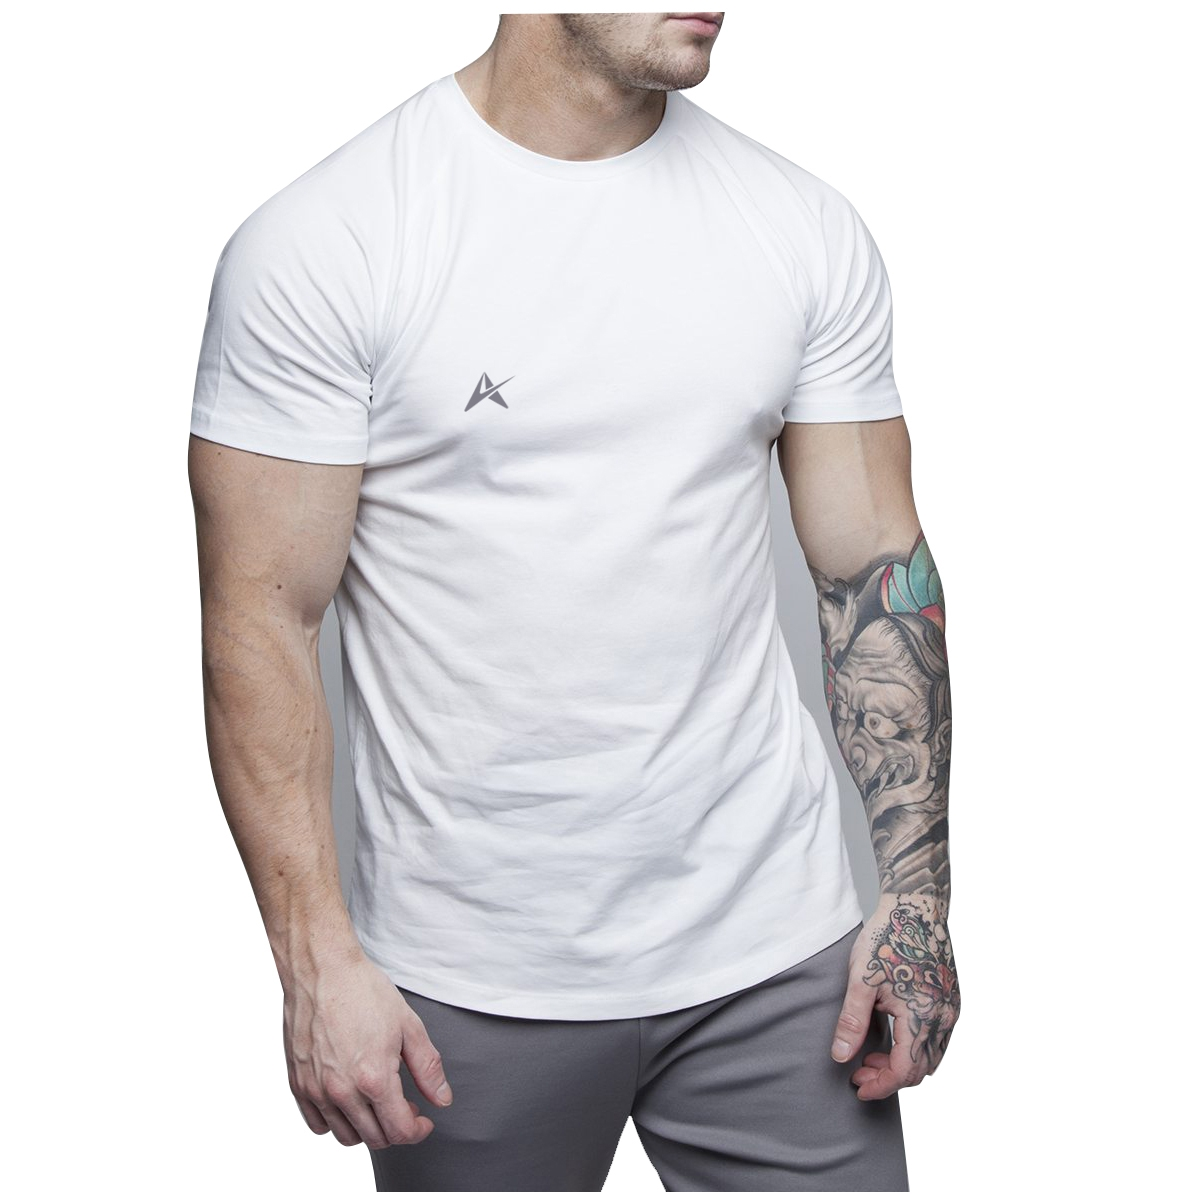 100% Cotton Dry Fit Men Screen Printing T-Shirt AI-019